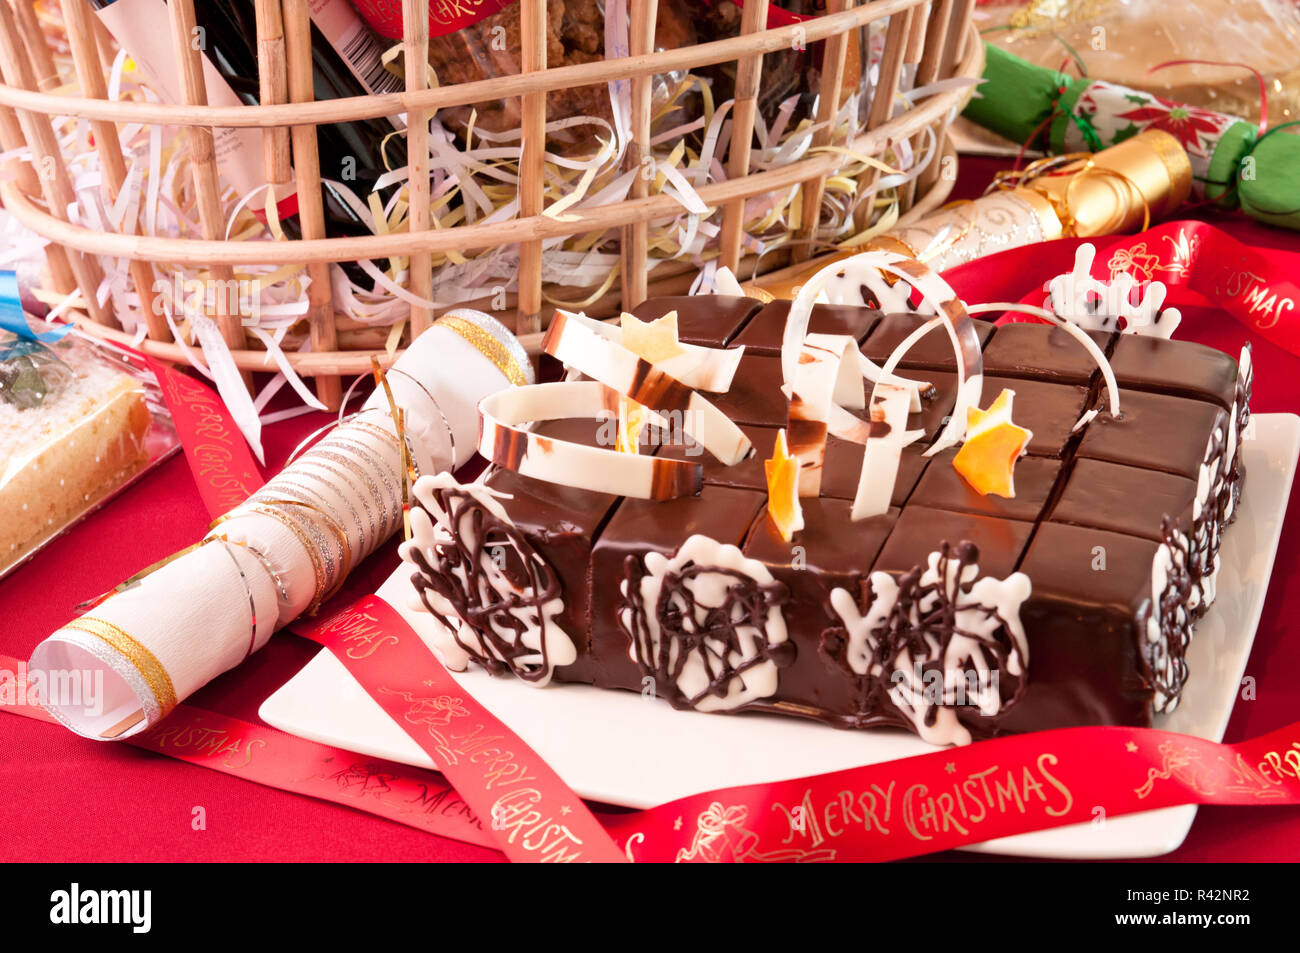 Christmas chocolate cake with a hamper basket at the background Stock Photo